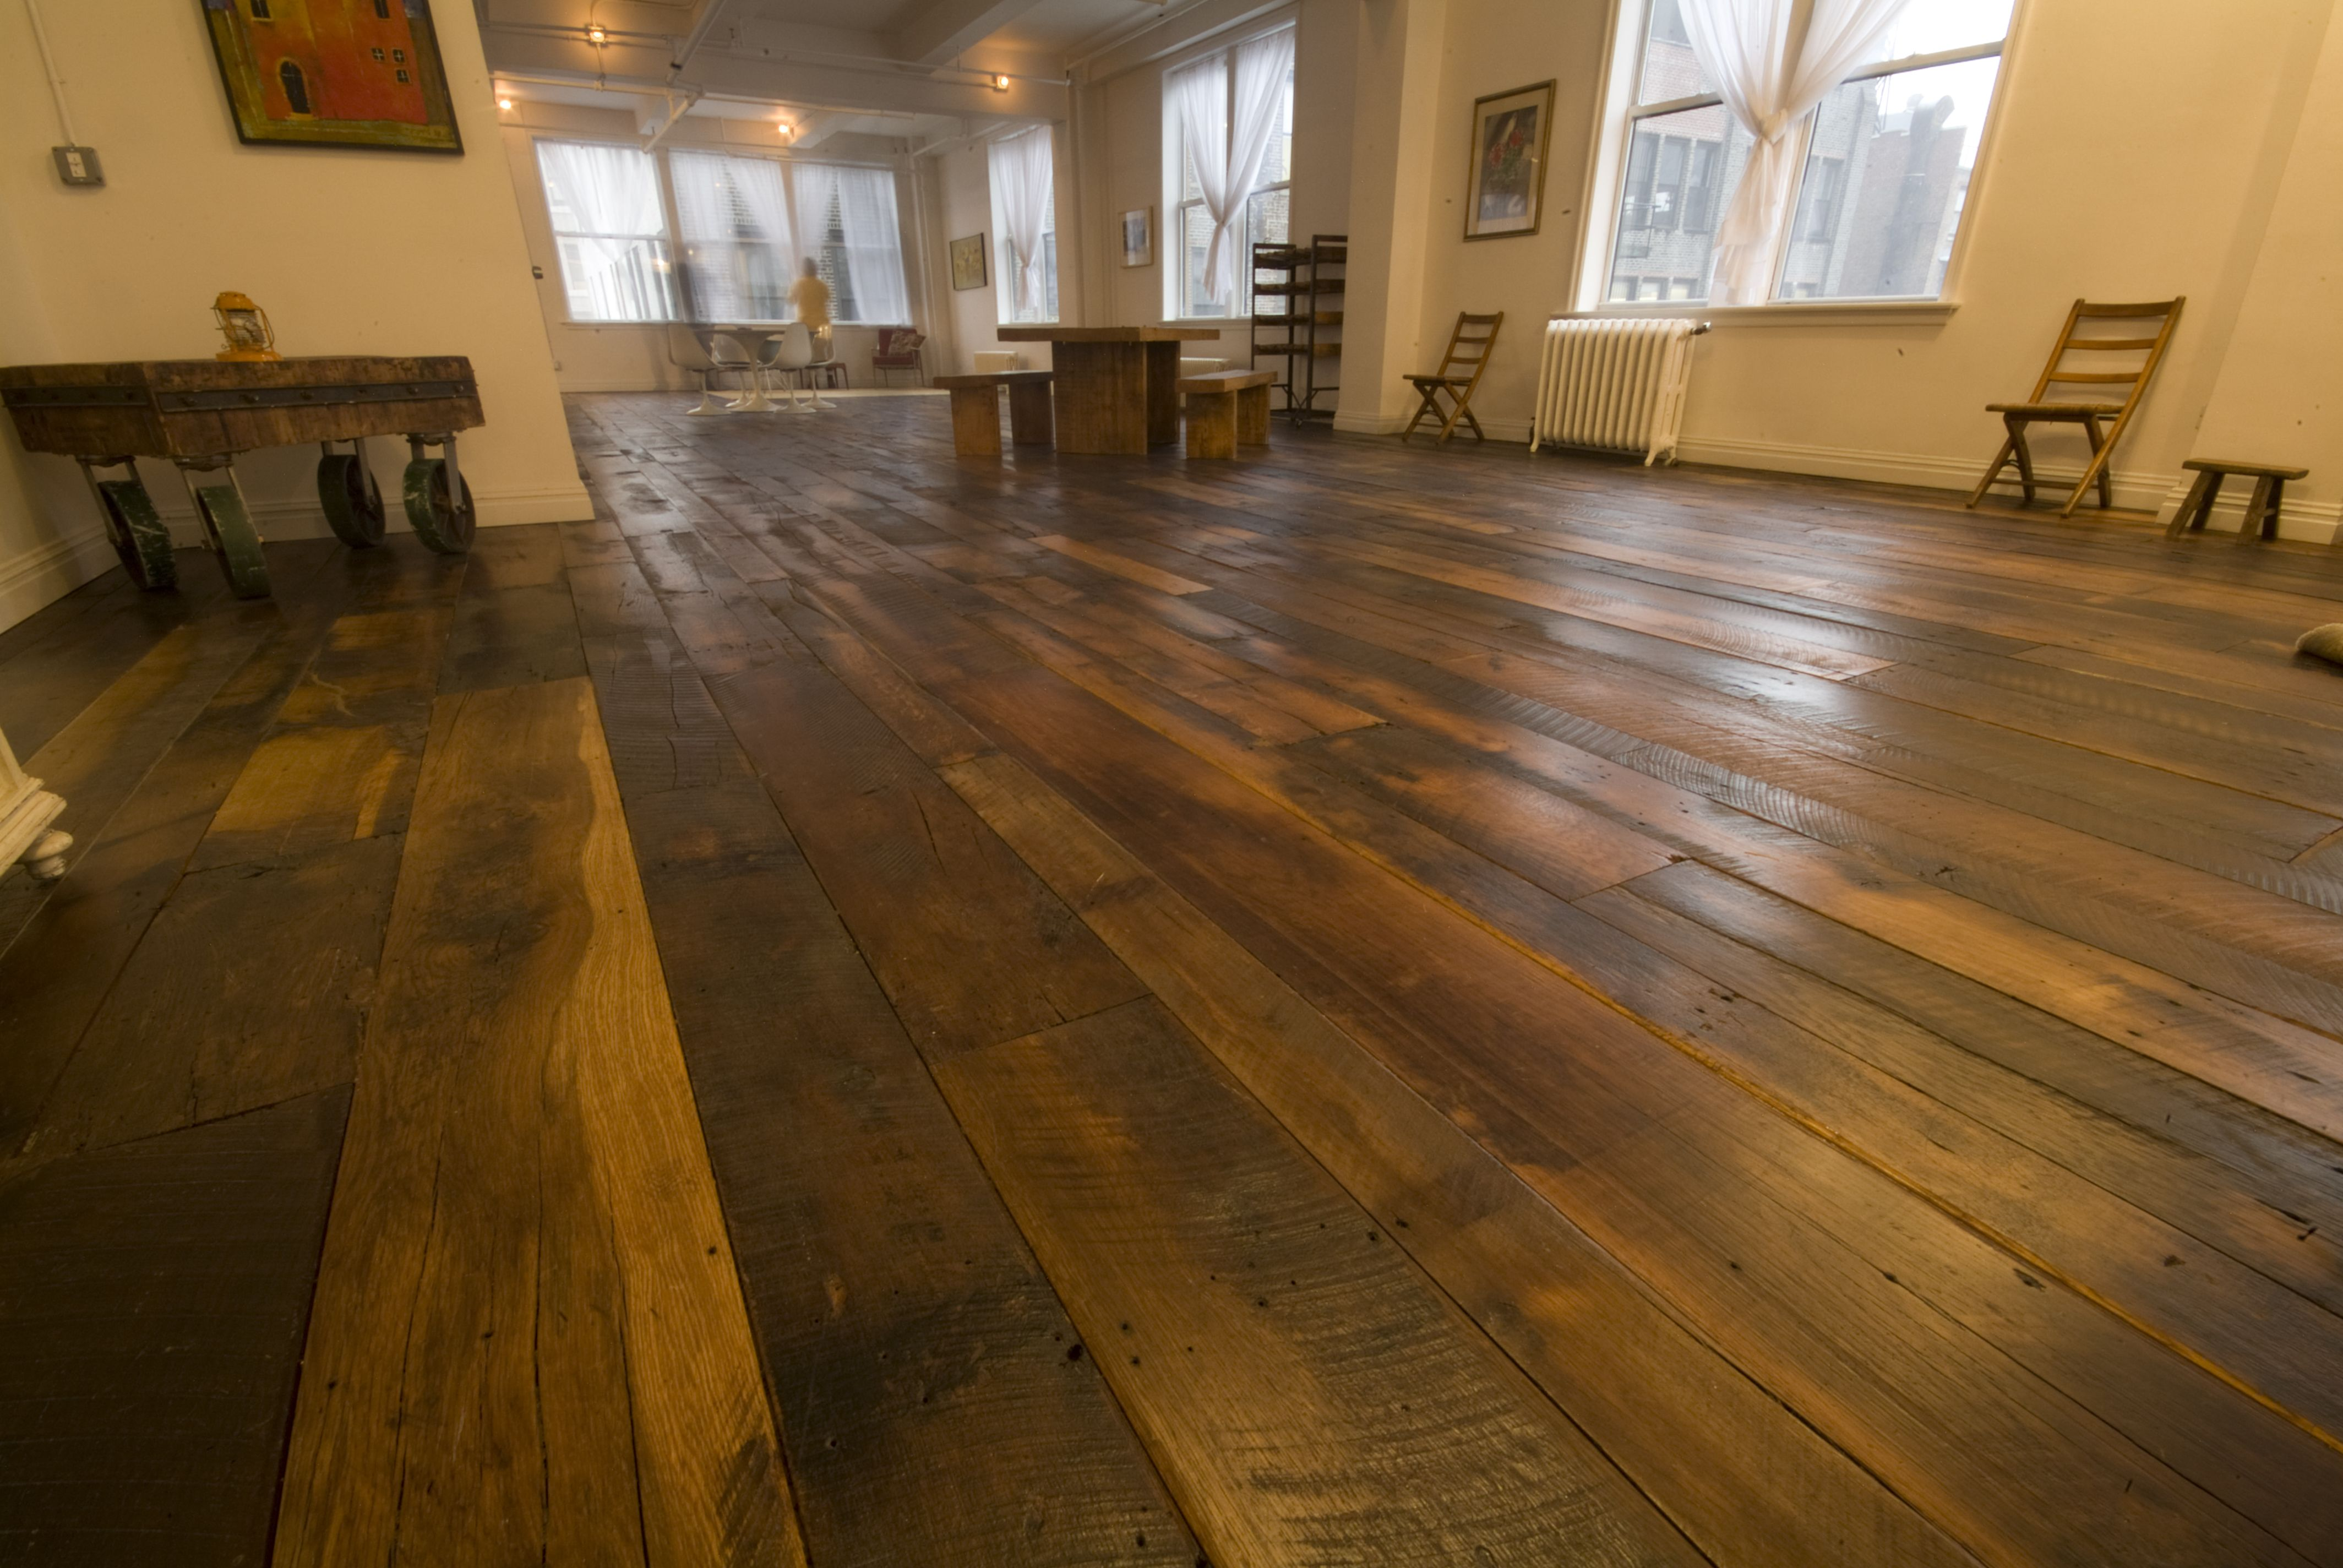 Pin on Old recycleable wood floors